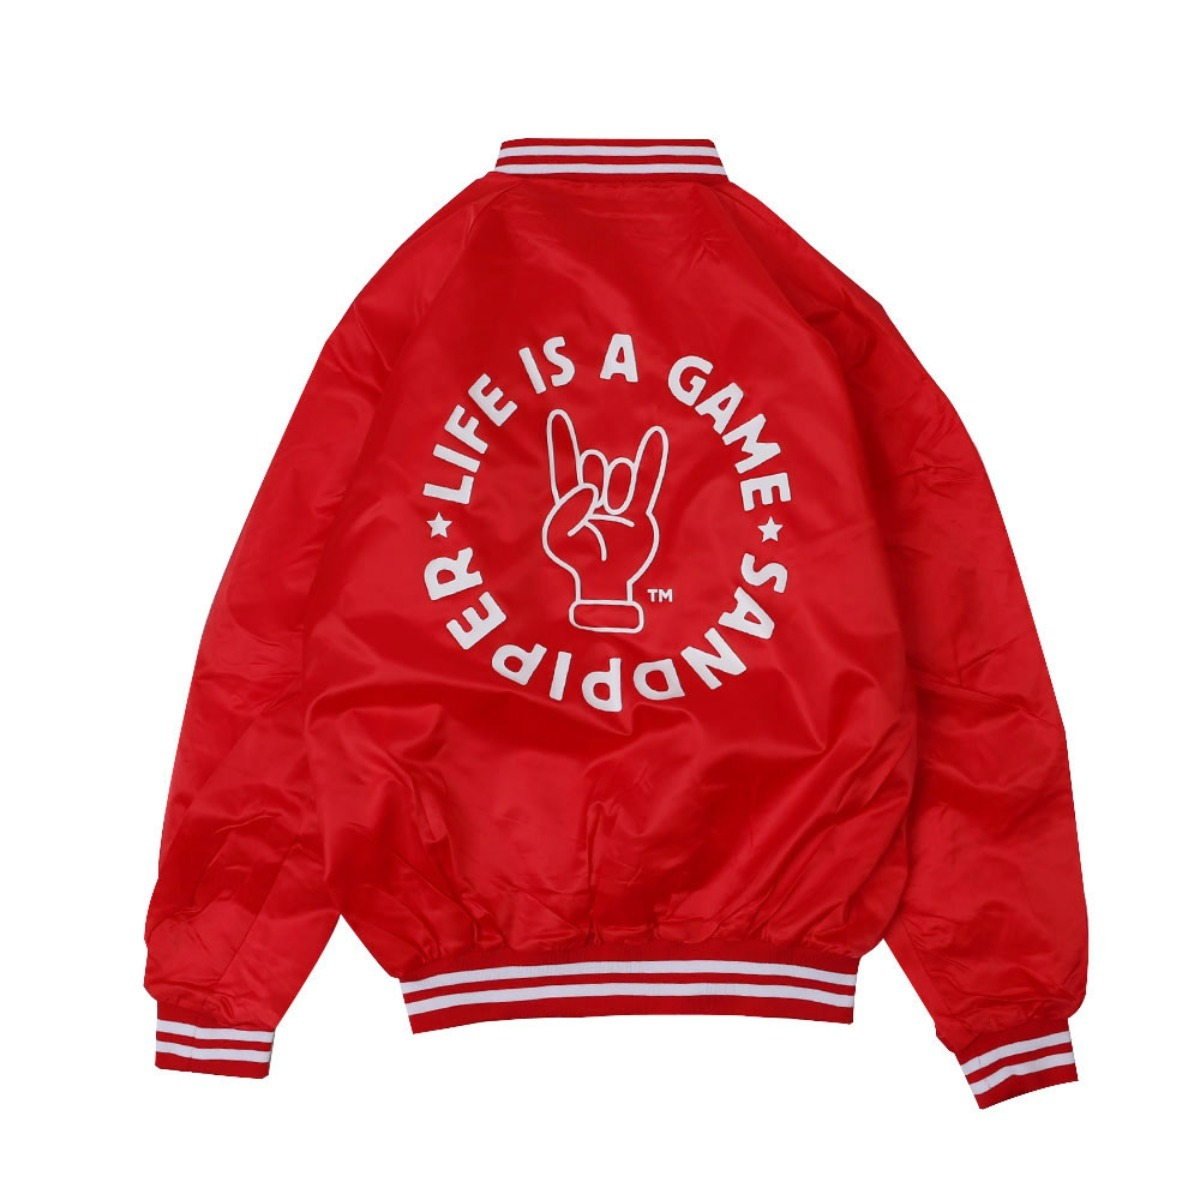 LIFE IS A GAME BASEBALL JACKET (Red CARDINAL ACTIVE WEAR)